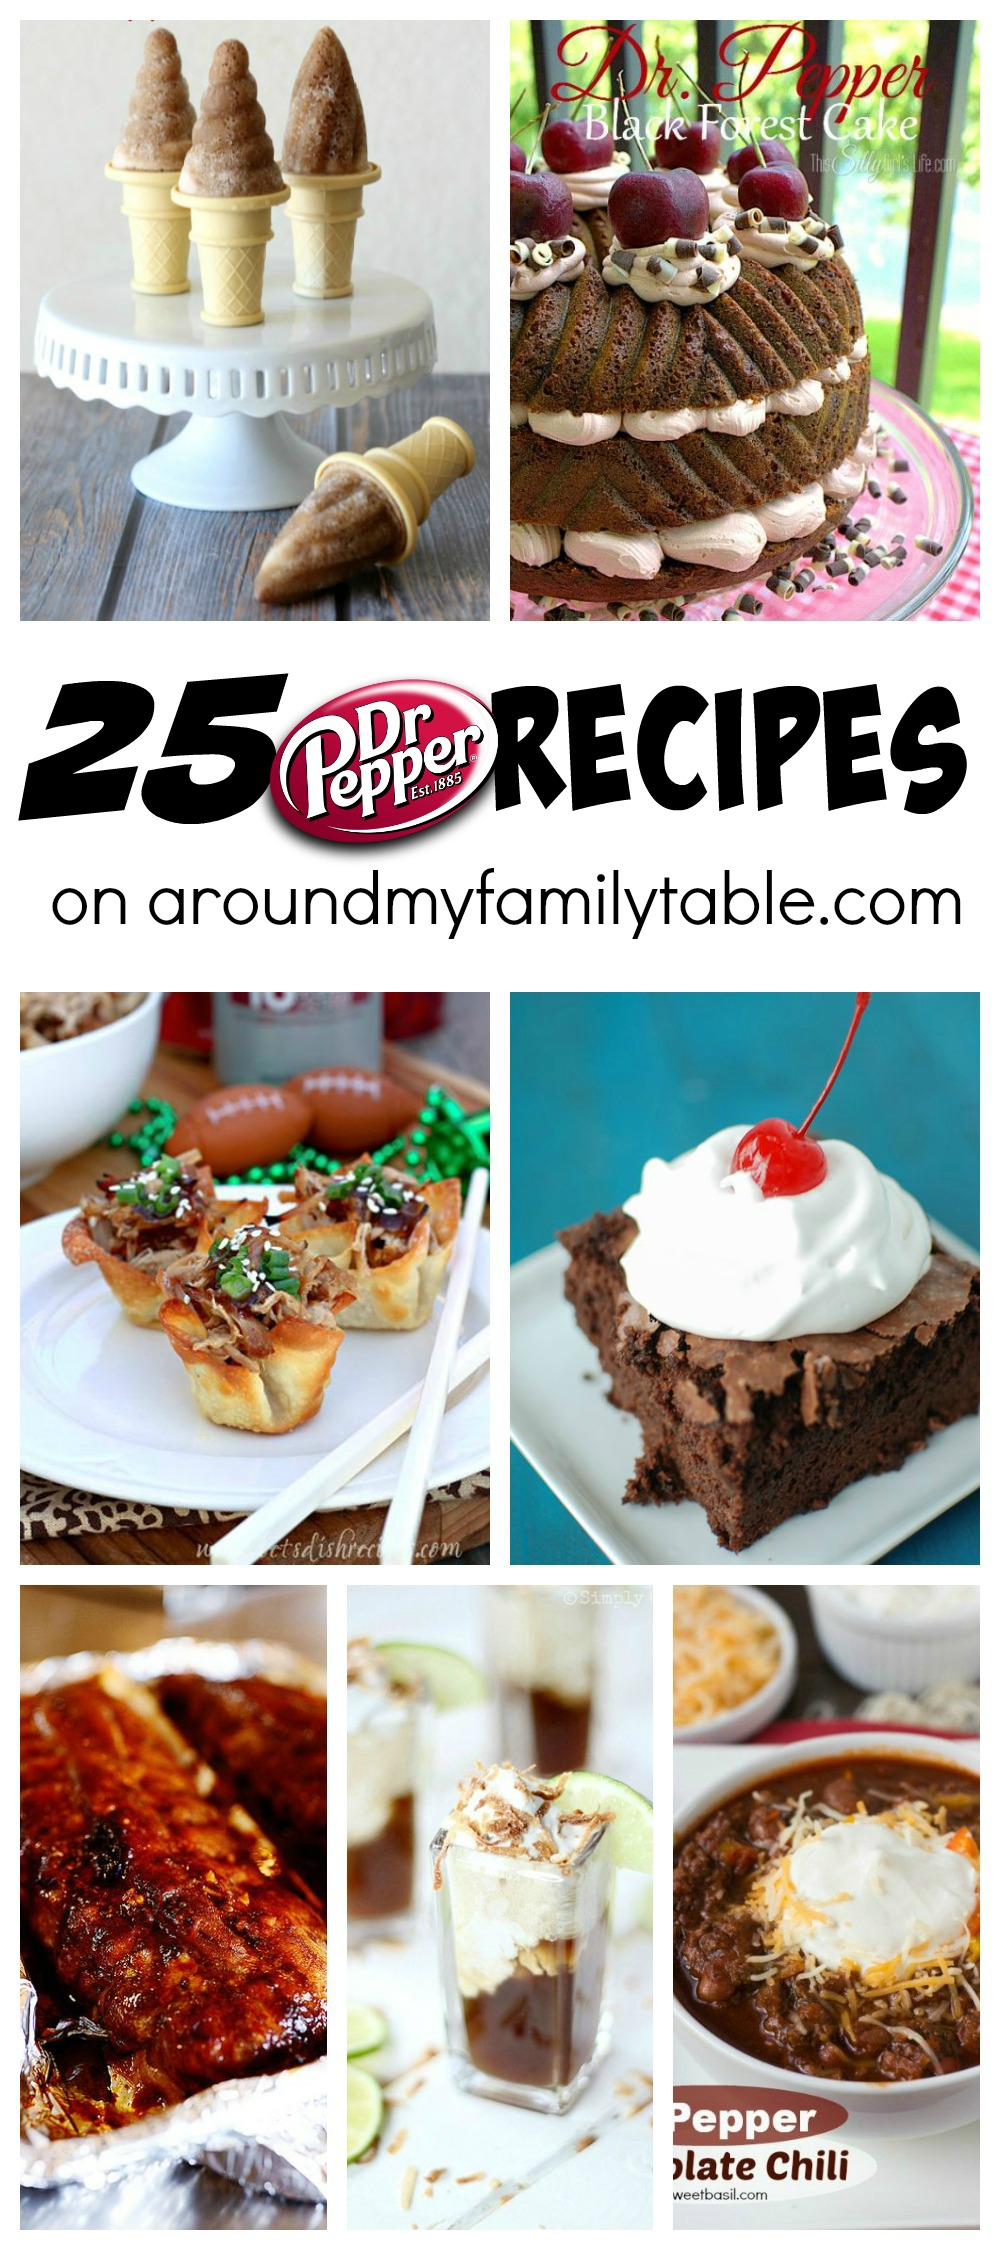 There's a reason why Dr. Pepper is so popular and these 25 Dr. Pepper Recipes are here to show you just how versatile your favorite soda can be!